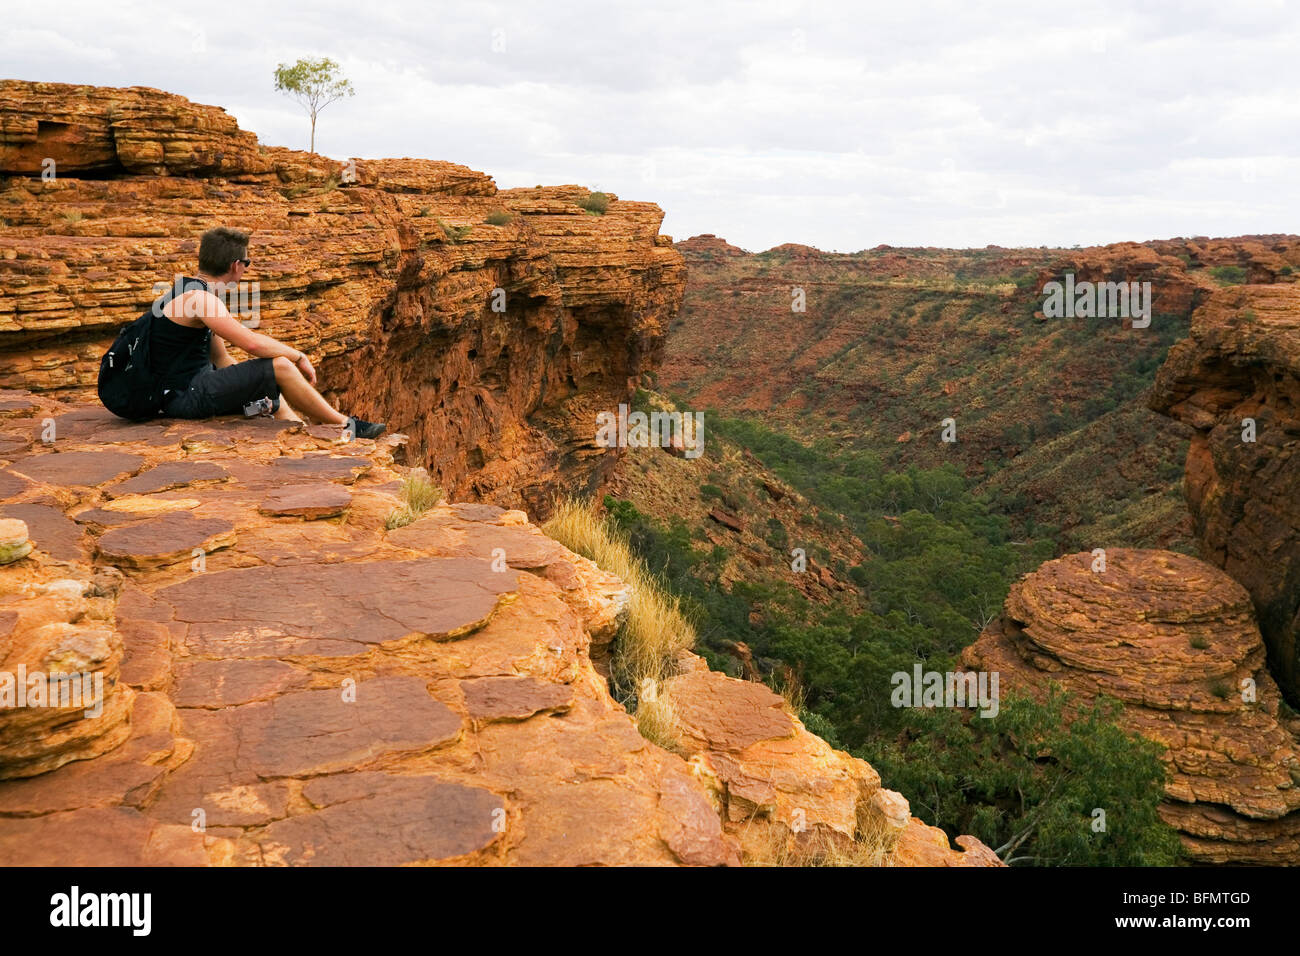 Australia, Northern Territory, Watarrka (Kings Canyon) National Park.  A hiker looks out over Kings Canyon. (MR) Stock Photo